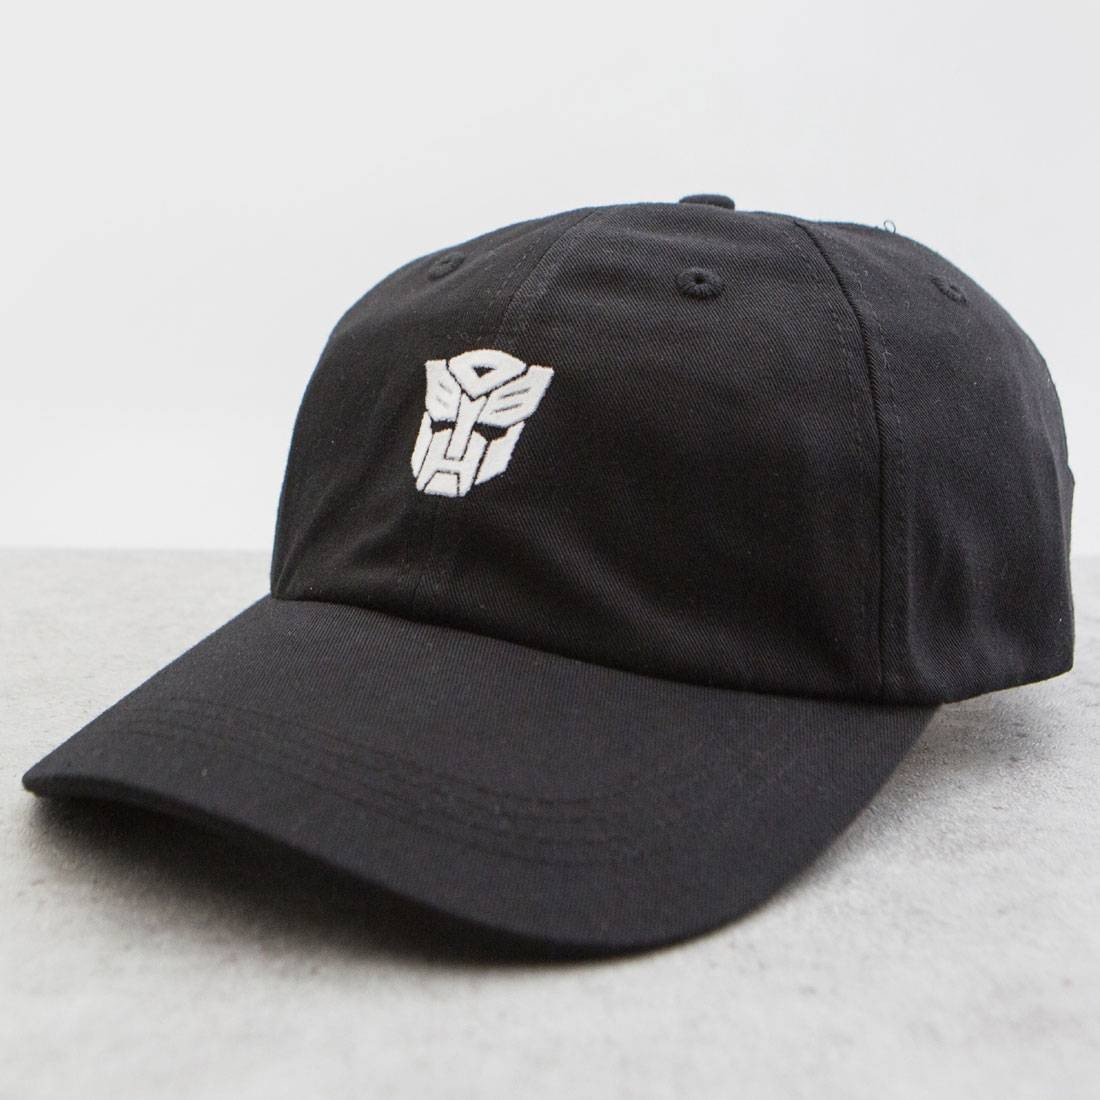 BAIT x Transformers Autobots Dad Cap (black)